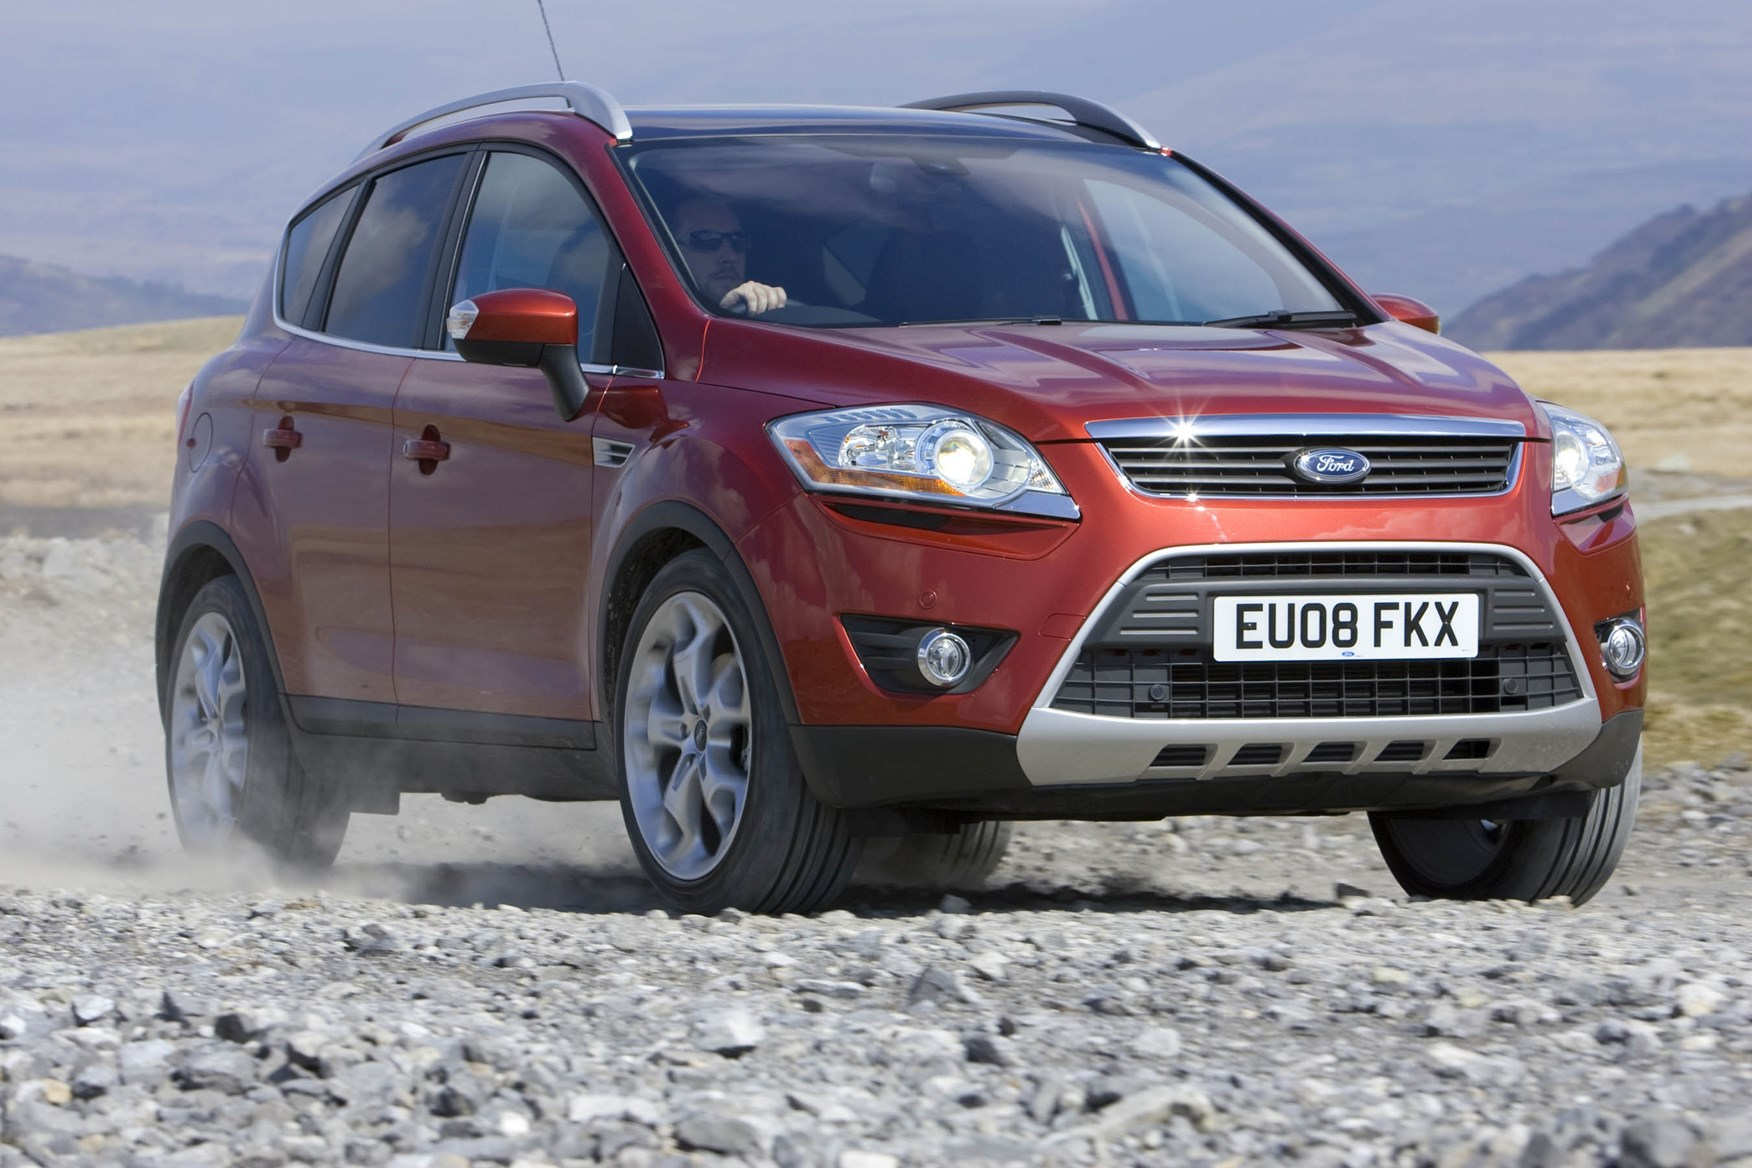 Car Ford Kuga: reviews of owners, specifications and features 82